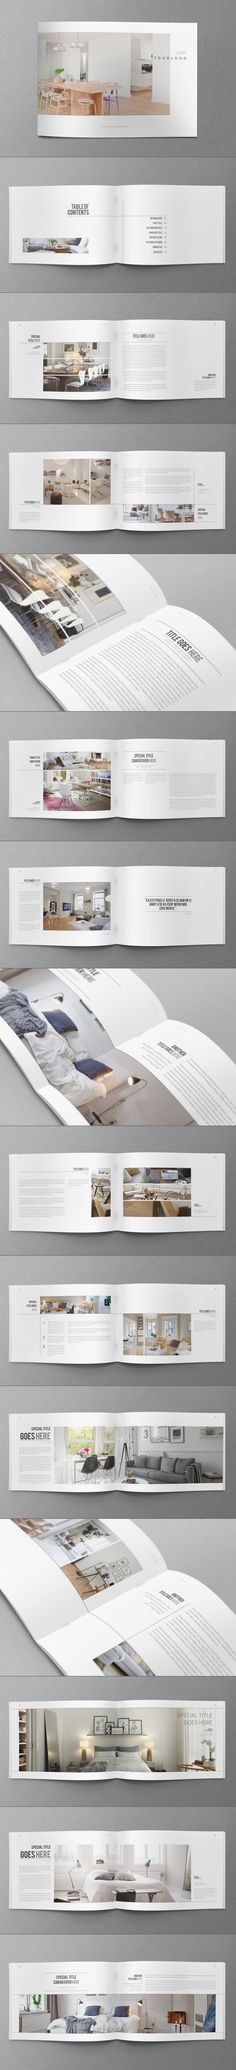 Minimal Interior Design Brochure. Download here: http://graphicriver.net/item/minimal-interior-design-brochure/8925678?ref=abradesign #design #brochure http://www.pinterest.com/chengyuanchieh                                                                                                                                                                                 More